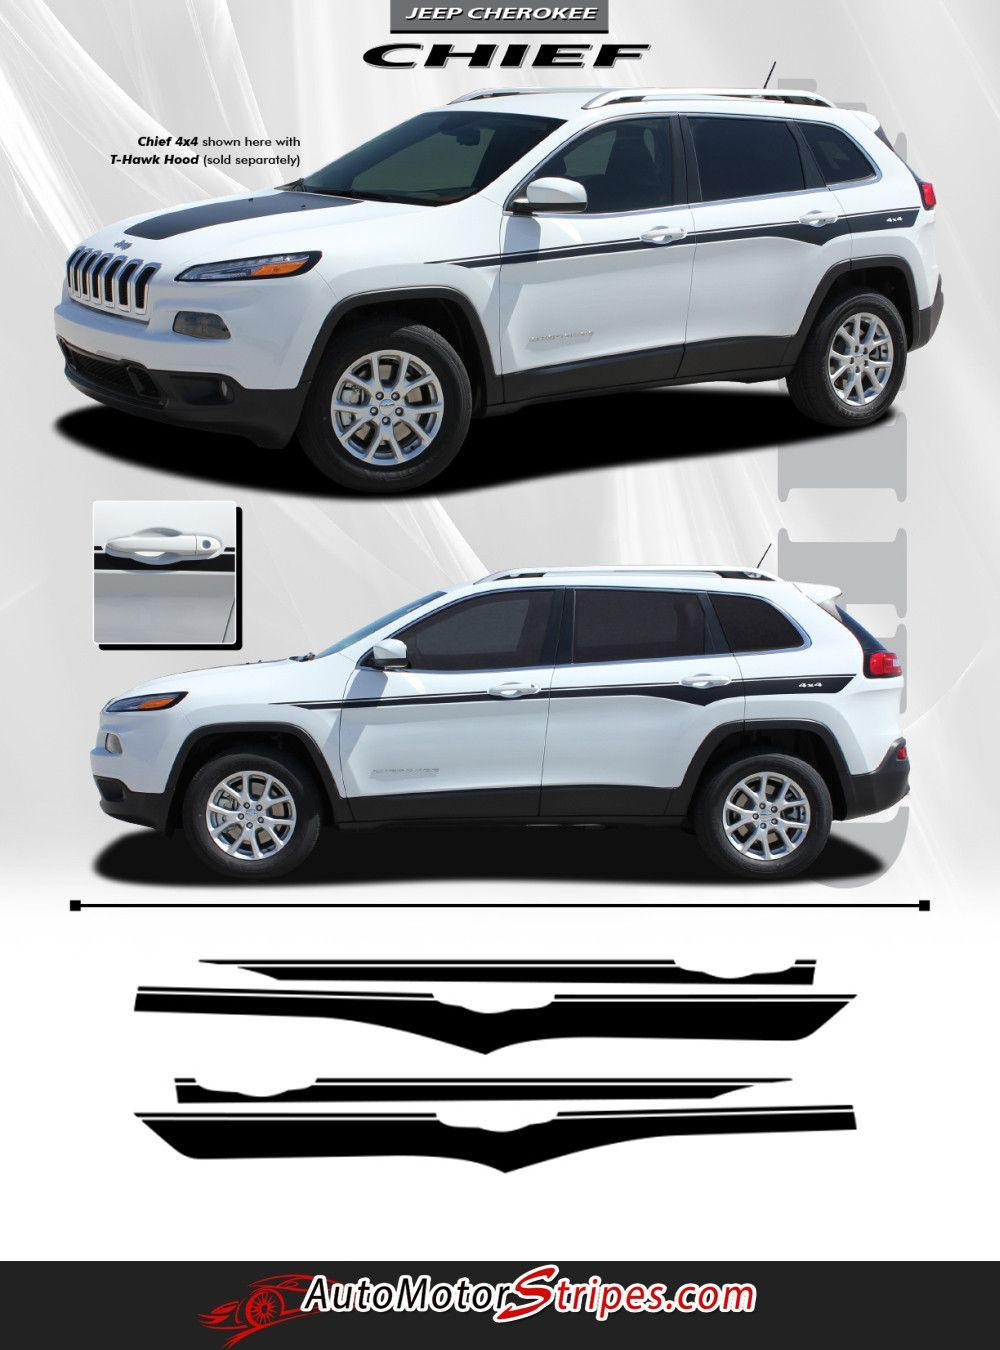 2014 2020 Jeep Cherokee Chief Mid Body Line Accent Vinyl Decal Graphic 3m Stripes Jeep Cherokee Jeep Cherokee 2017 Jeep